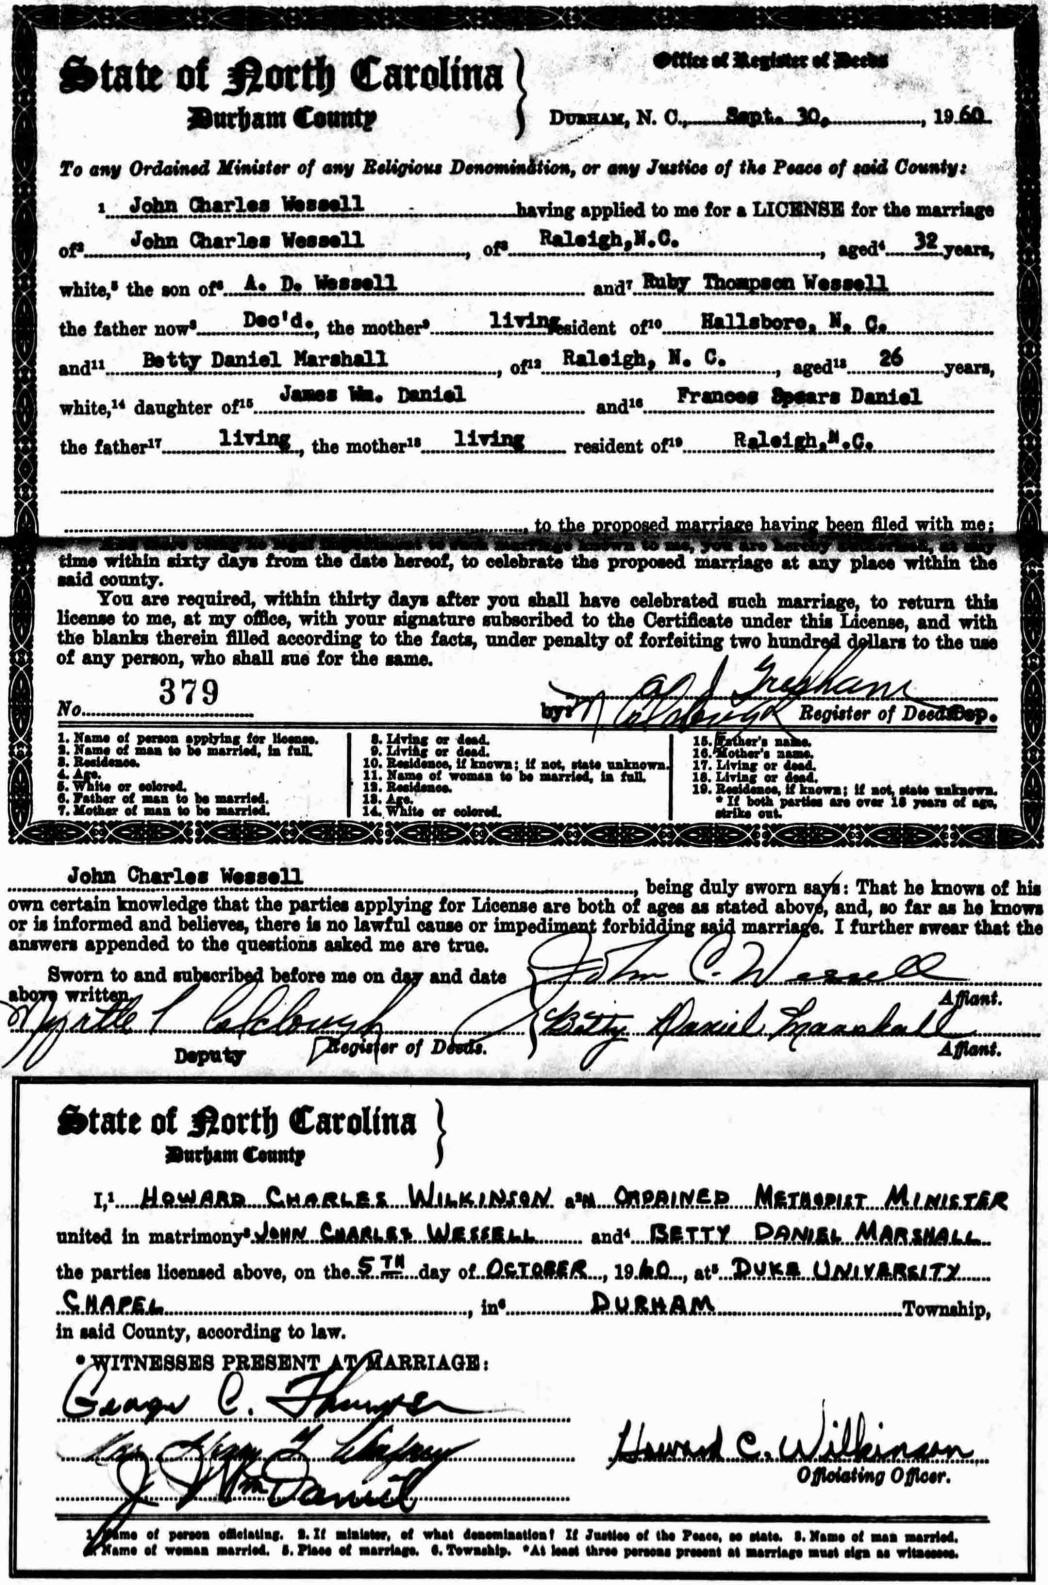 betty orr daniel wessell  marriage license betty orr daniel lawing and john charles wessell